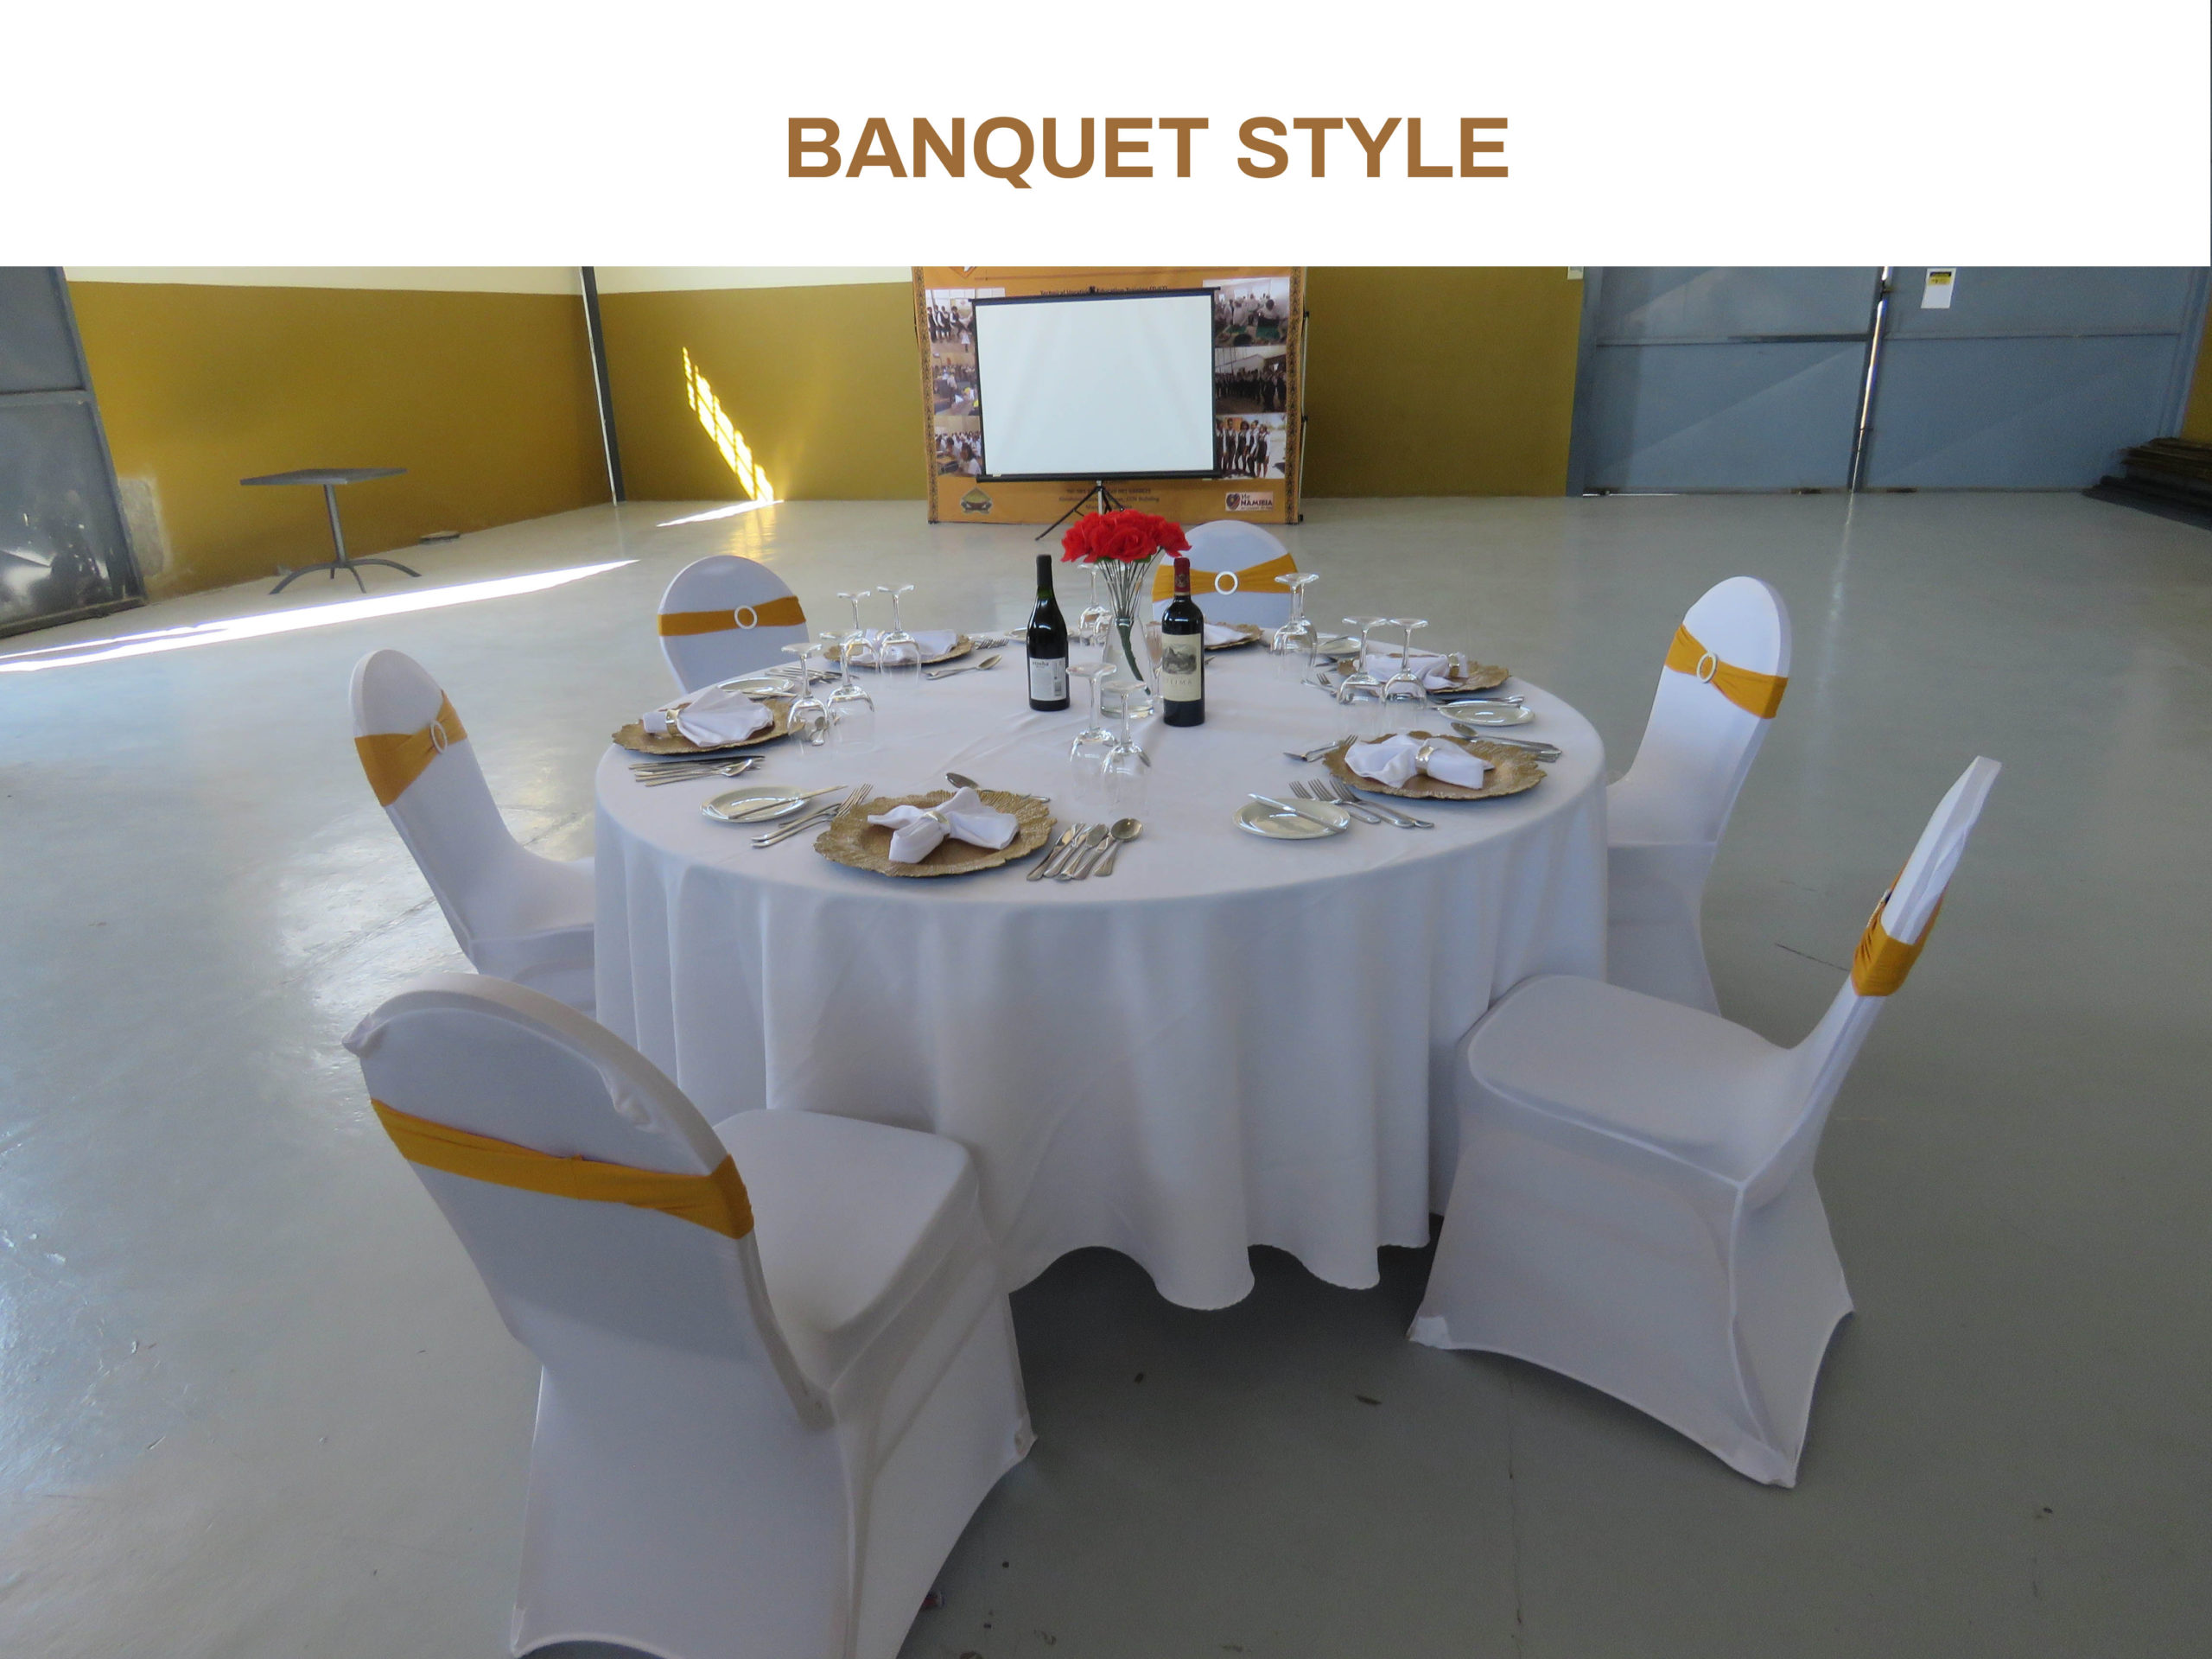 BANQUET STYLE